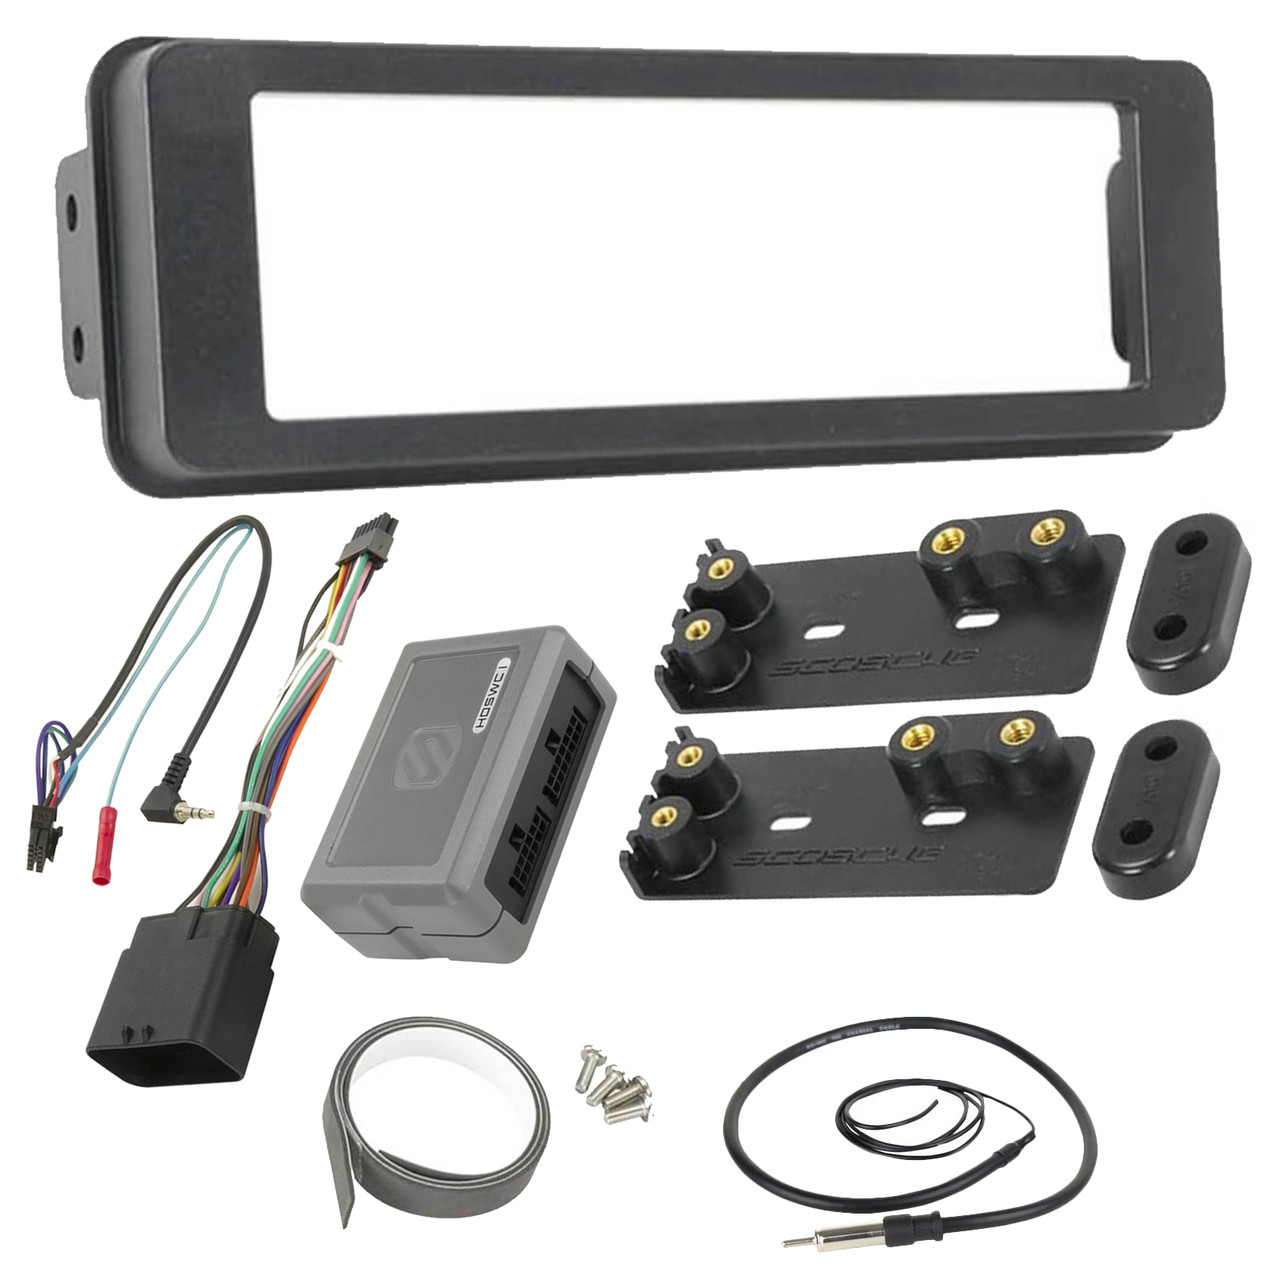 medium resolution of scosche hd7000b 1996 up harley davidson stereo install dash kit with 1992 s10 radio harness scosche wiring harness harley